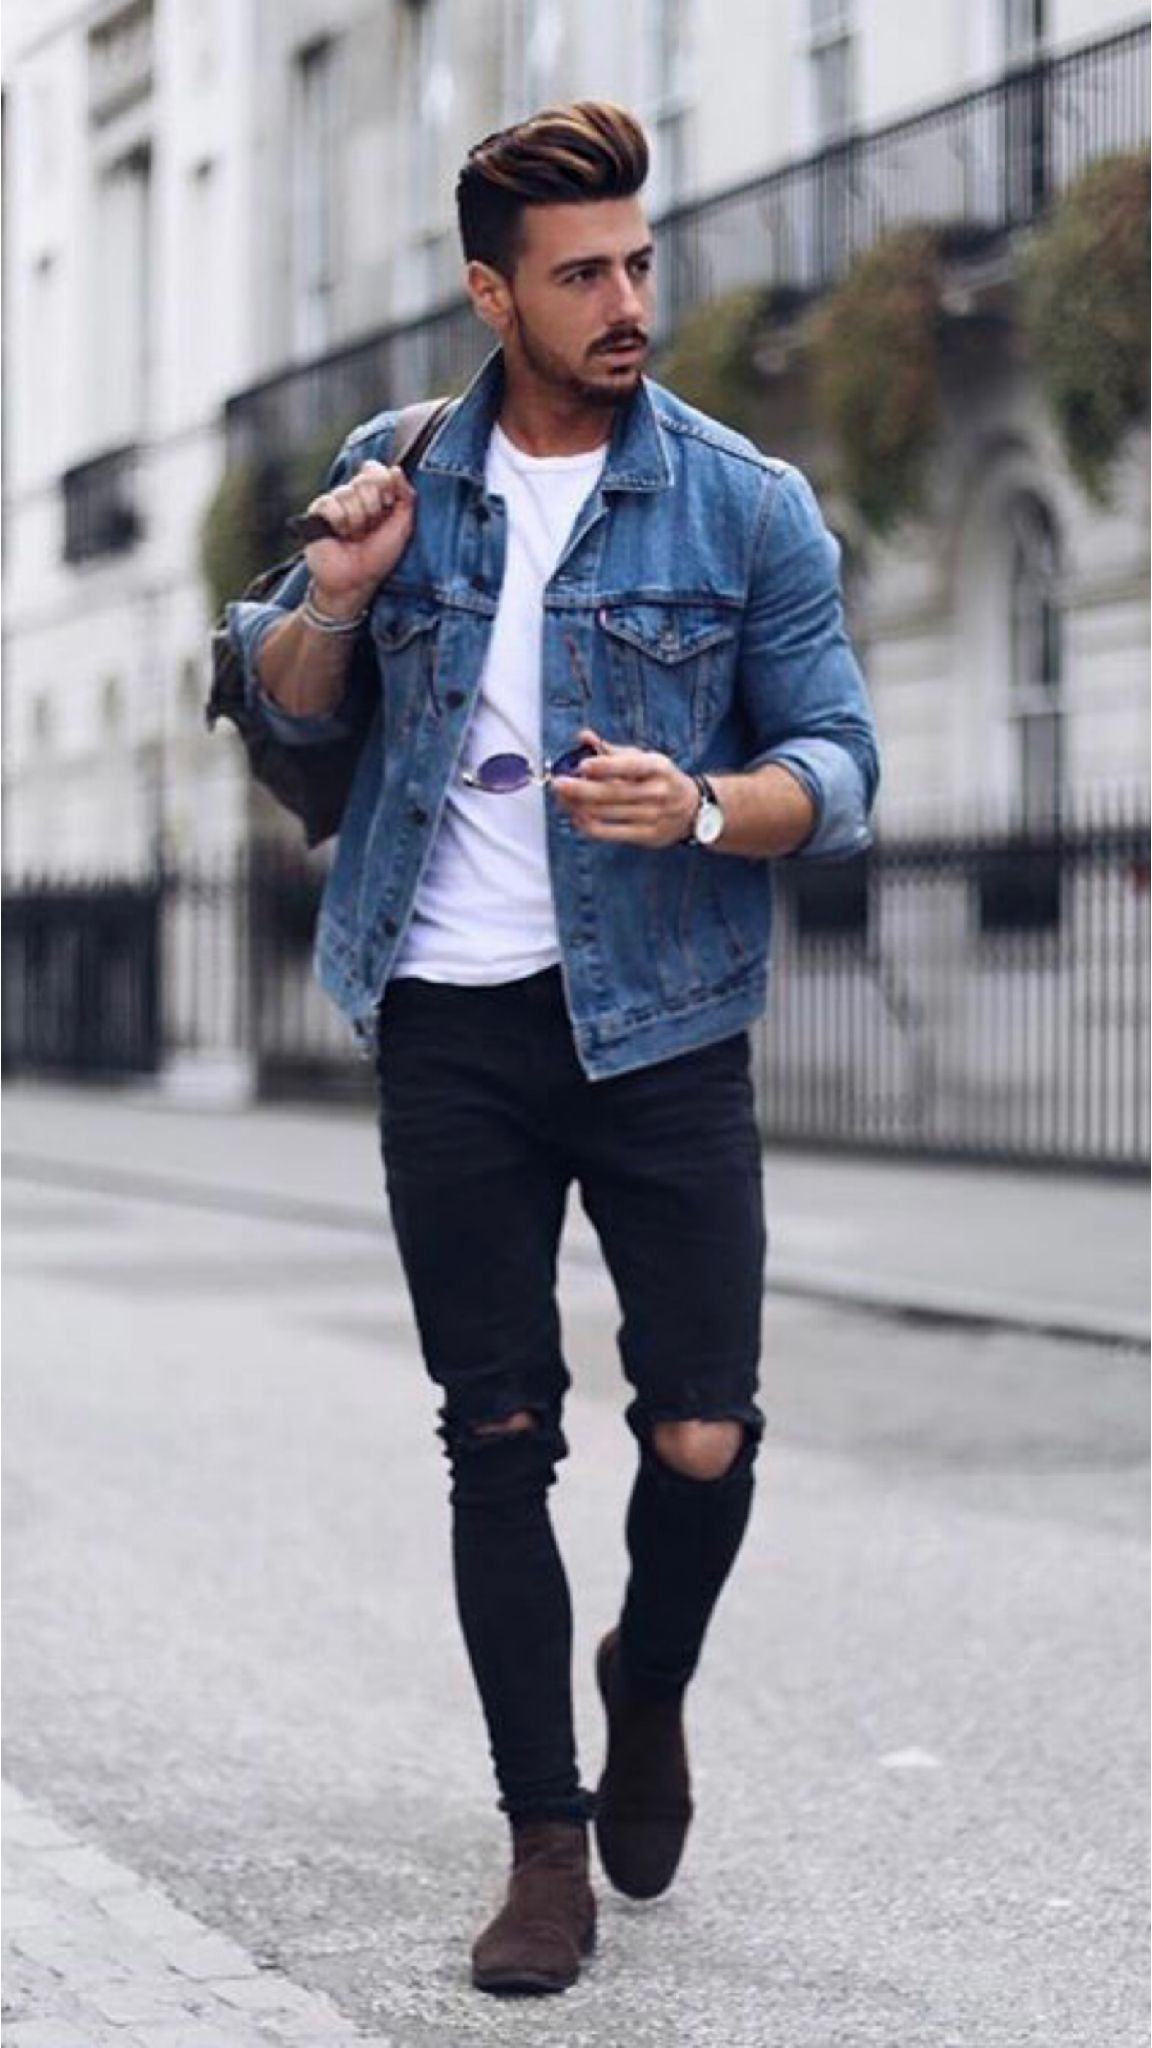 I Bought This Outfit It Looks Amazing On: 30 Amazing Street Style Outfits!